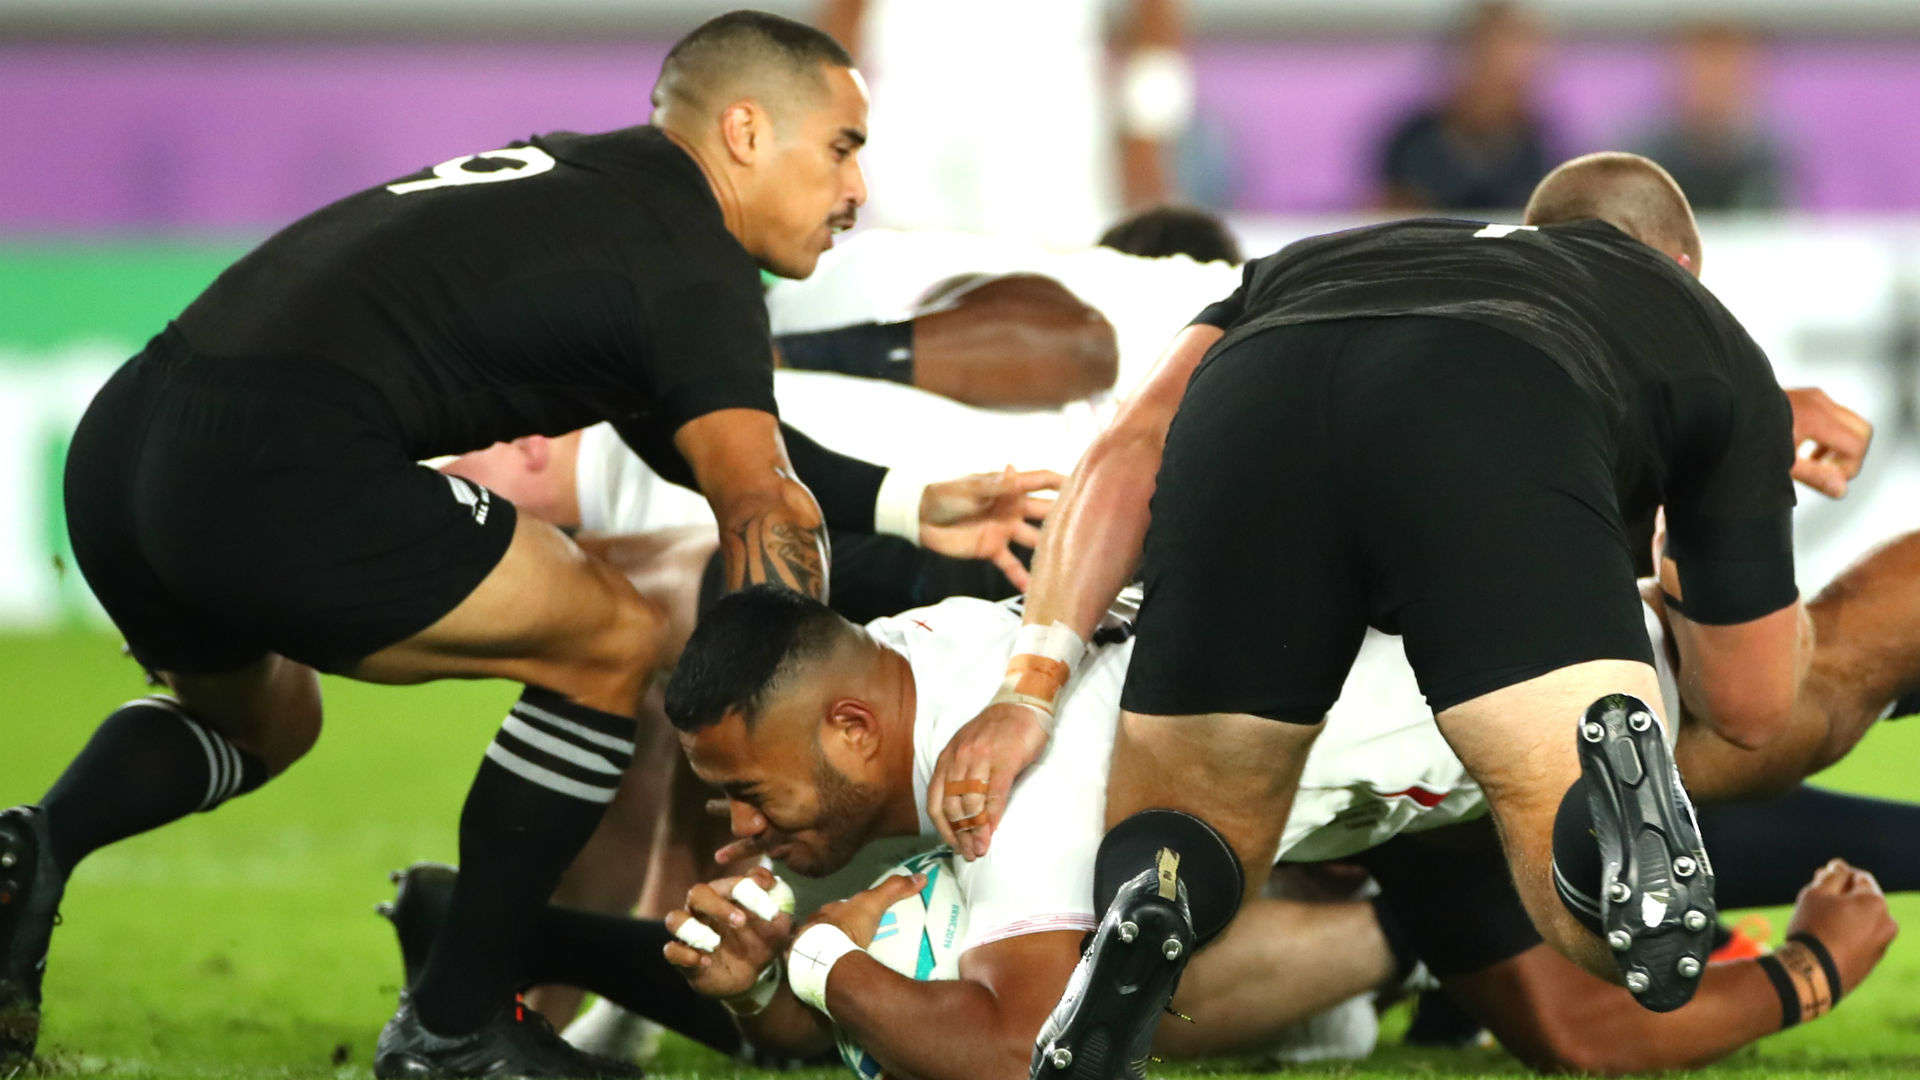 Rugby World Cup 2019: England 19-7 New Zealand